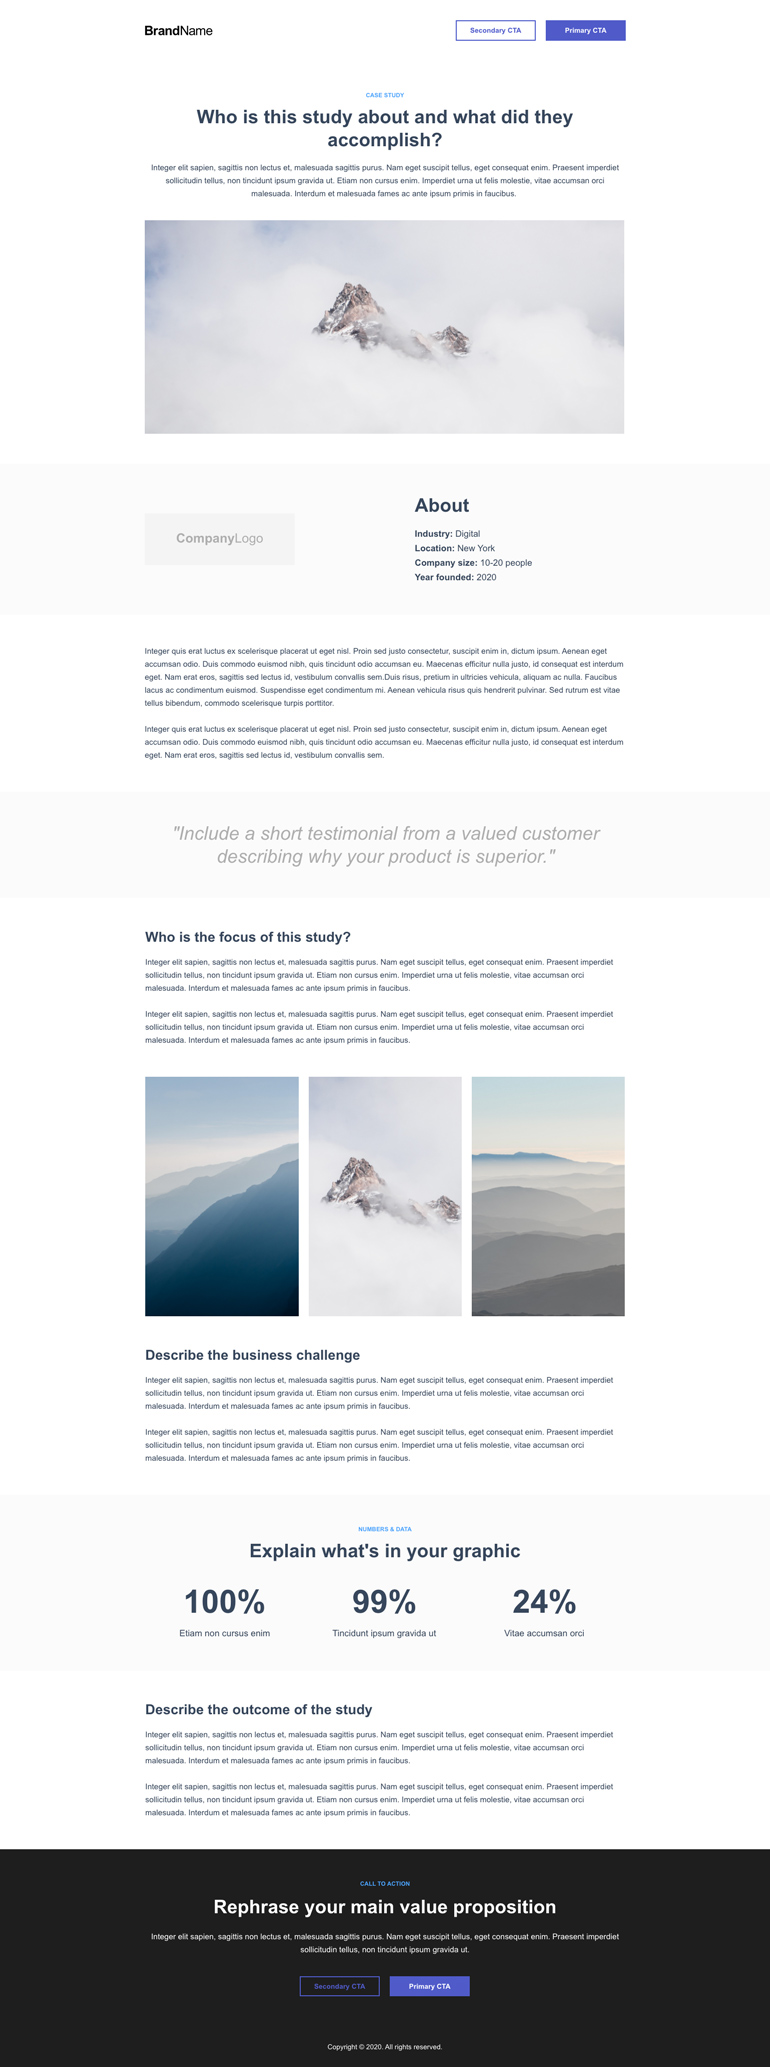 Case study landing page 3